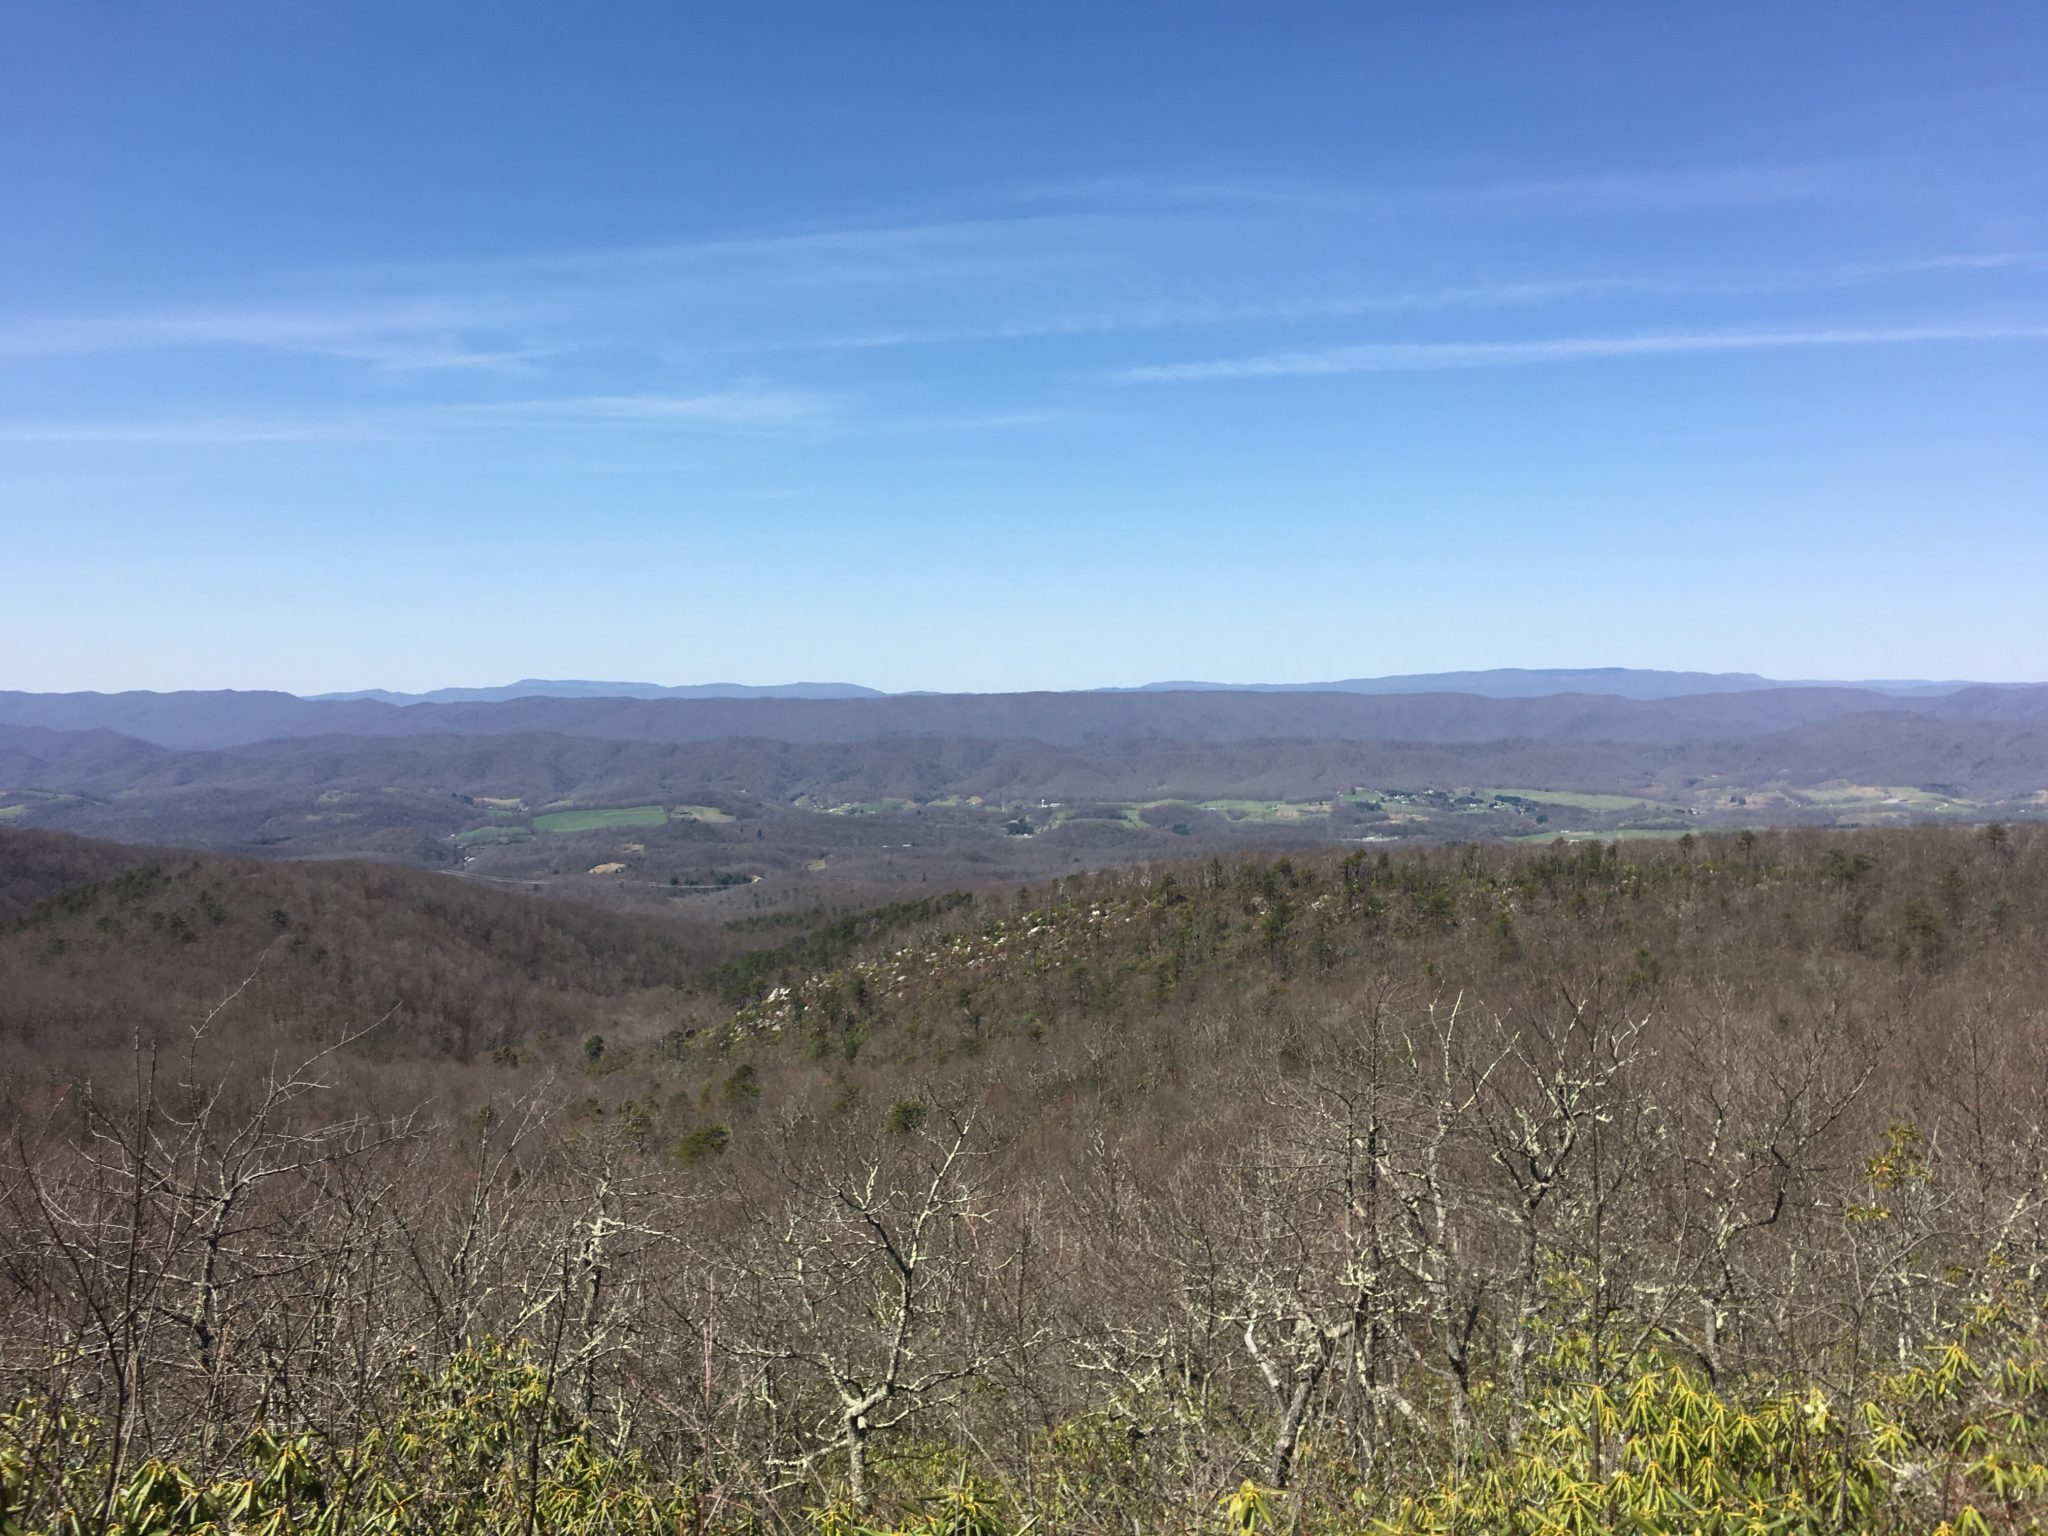 Typical views of Virginia with small towns and farms in the valley